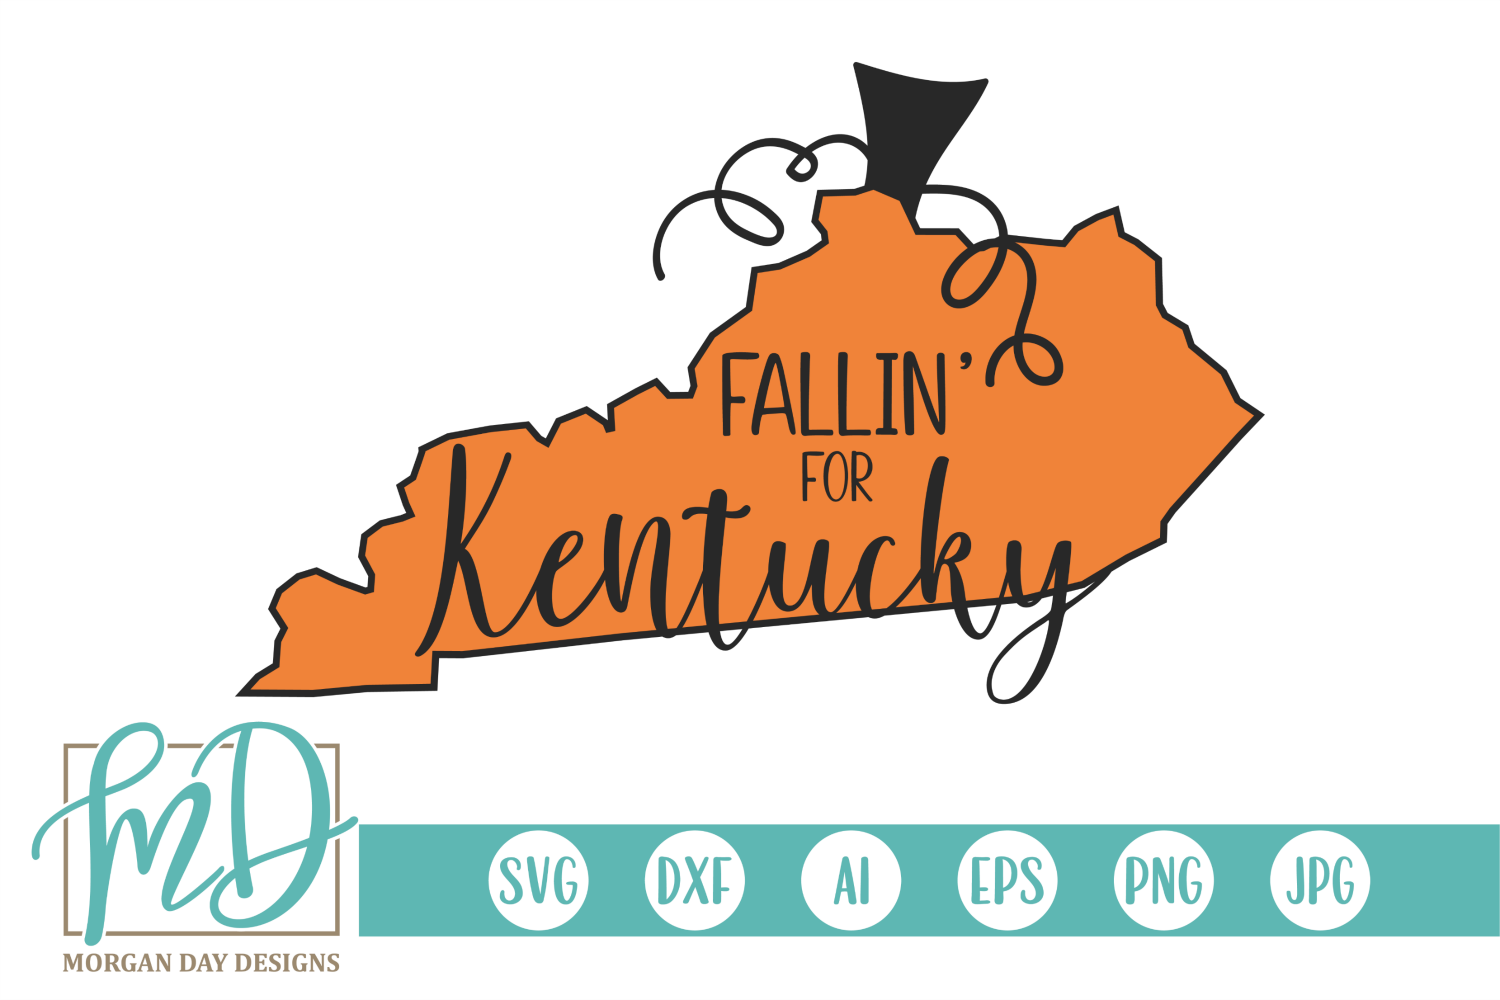 Download Free Fallin For Kentucky Graphic By Morgan Day Designs Creative for Cricut Explore, Silhouette and other cutting machines.